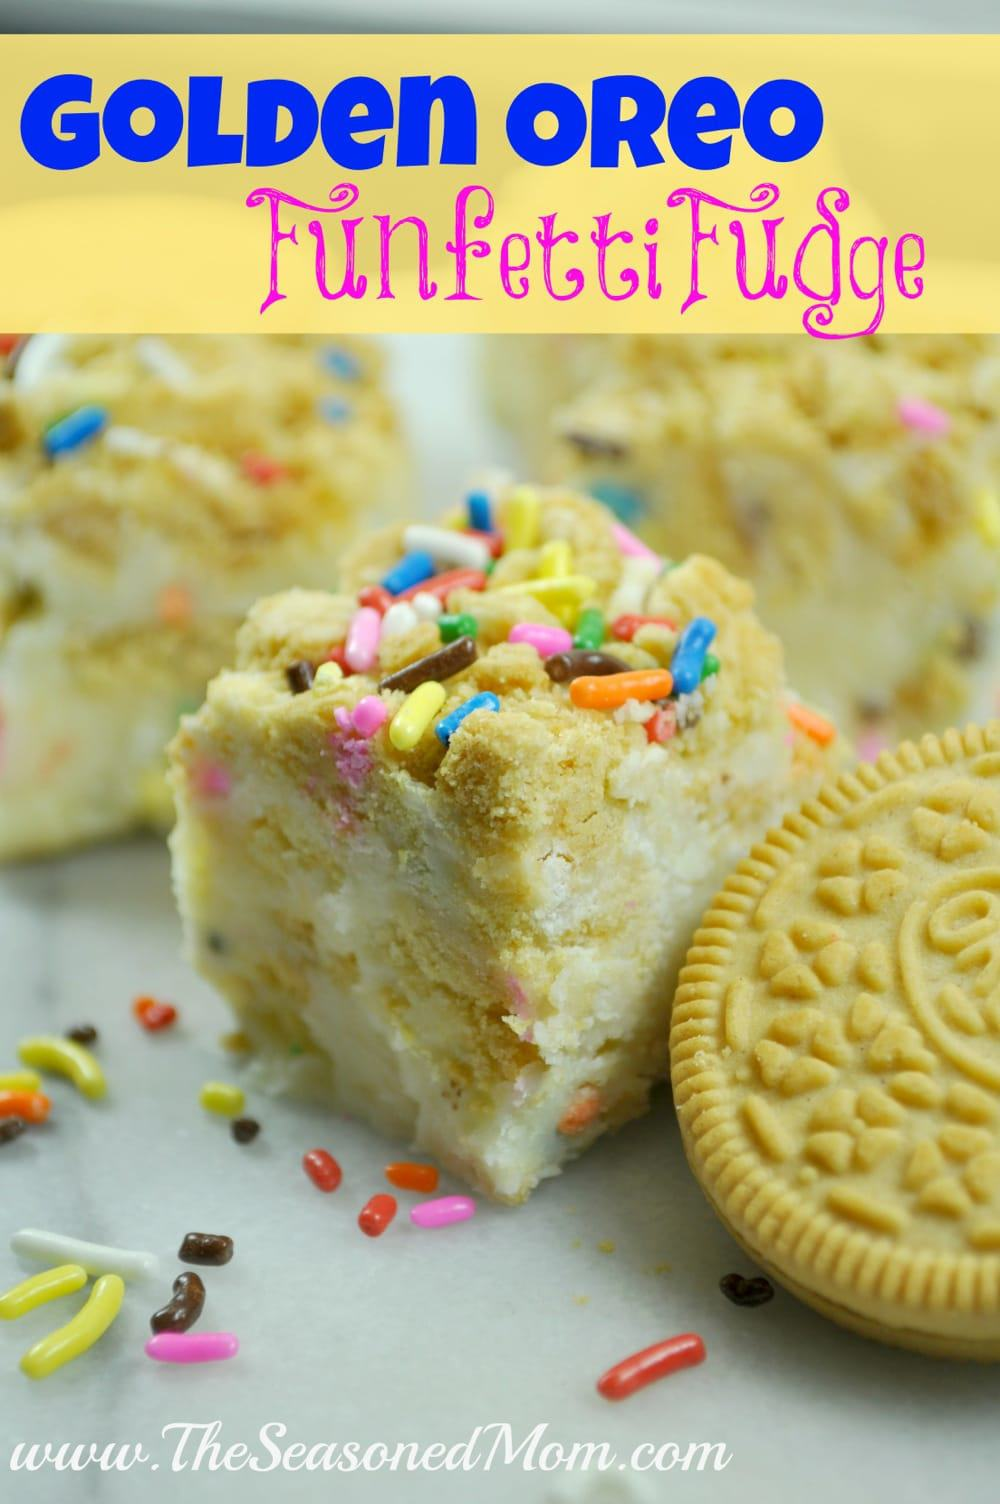 wpid-Golden-Oreo-Funfetti-Fudge.jpg